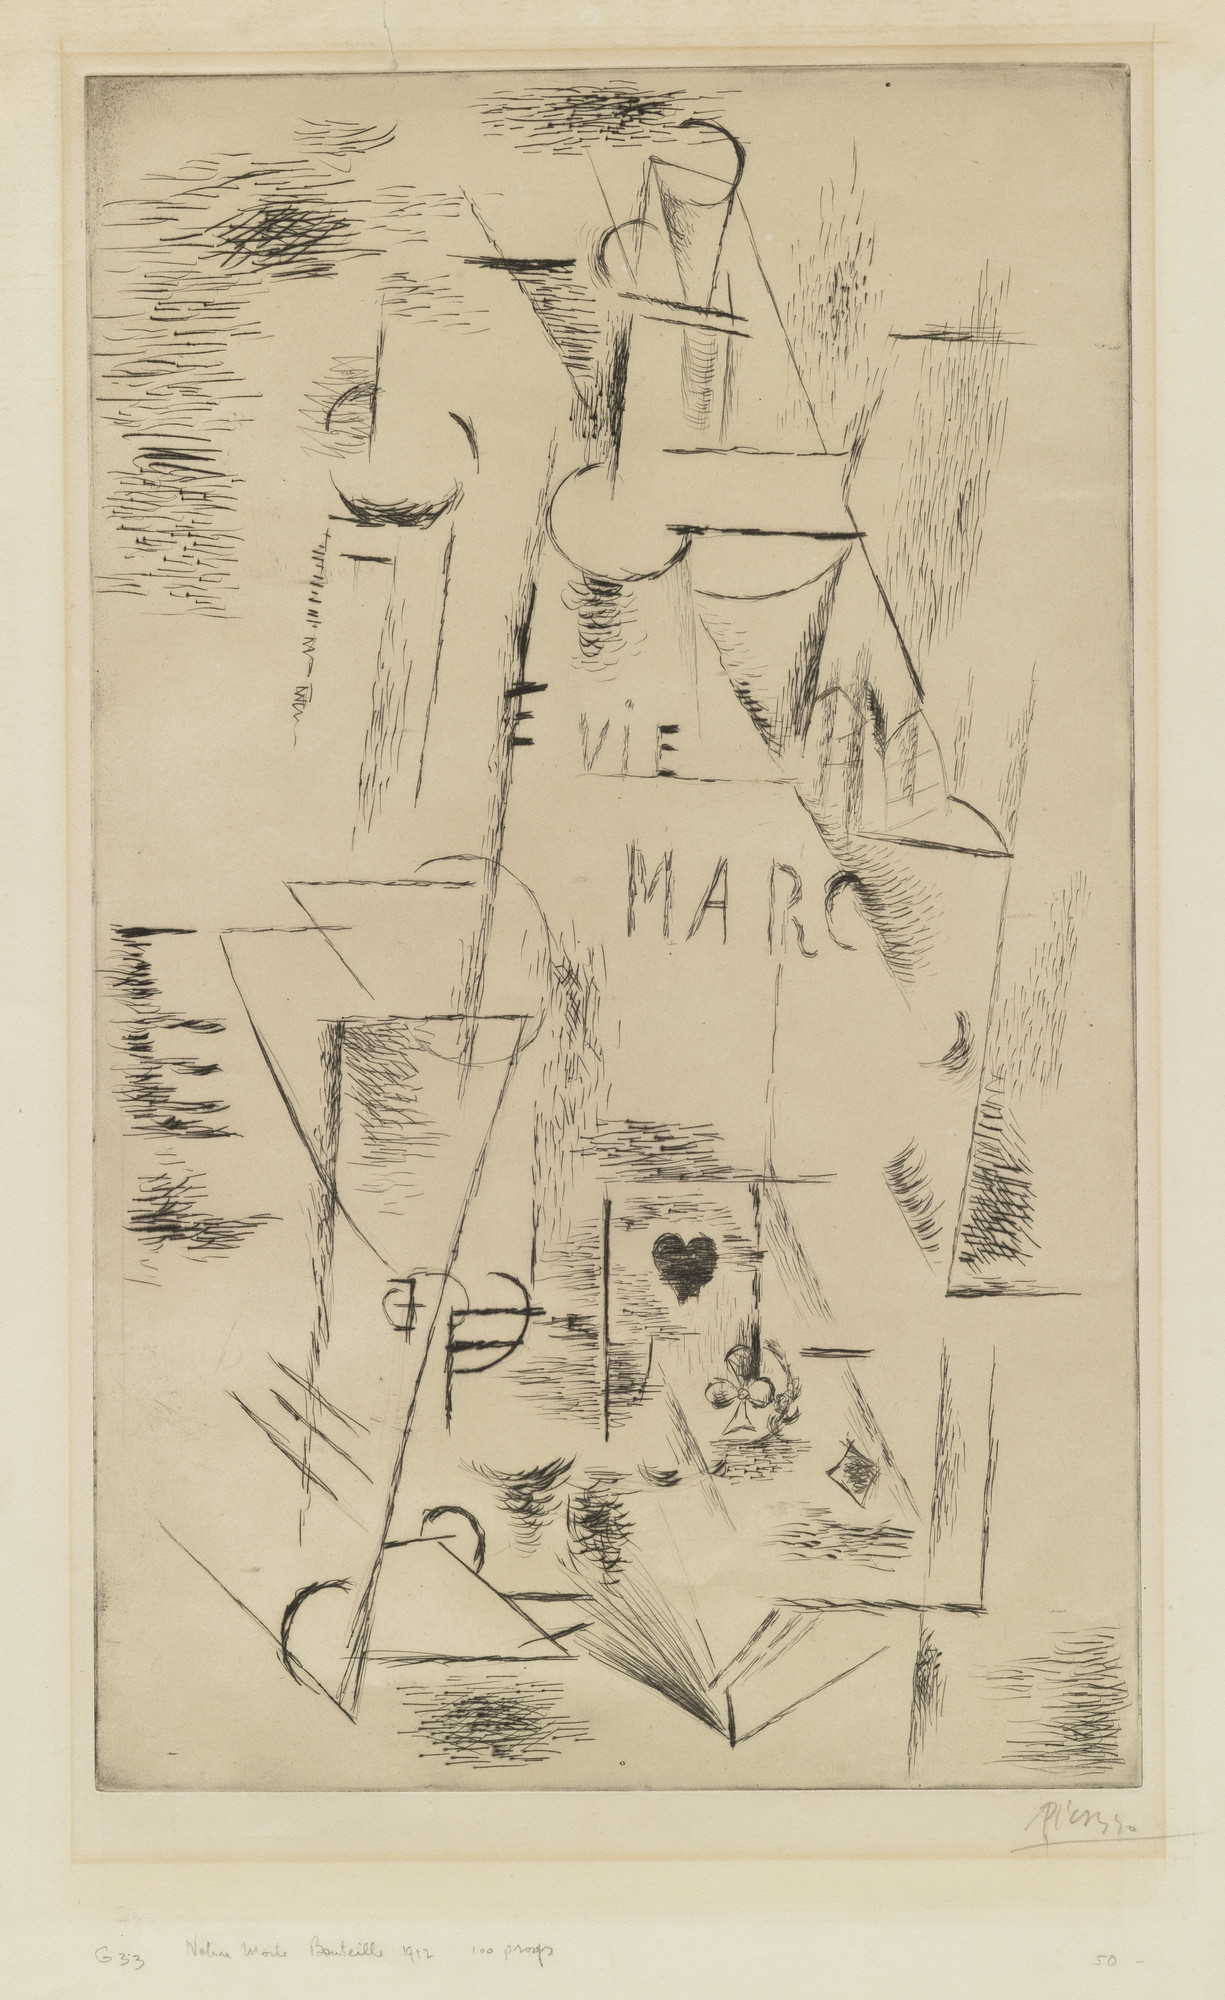 Pablo Picasso. Still Life with Bottle of Marc (Nature morte à la bouteille de marc). 1911, published 1912